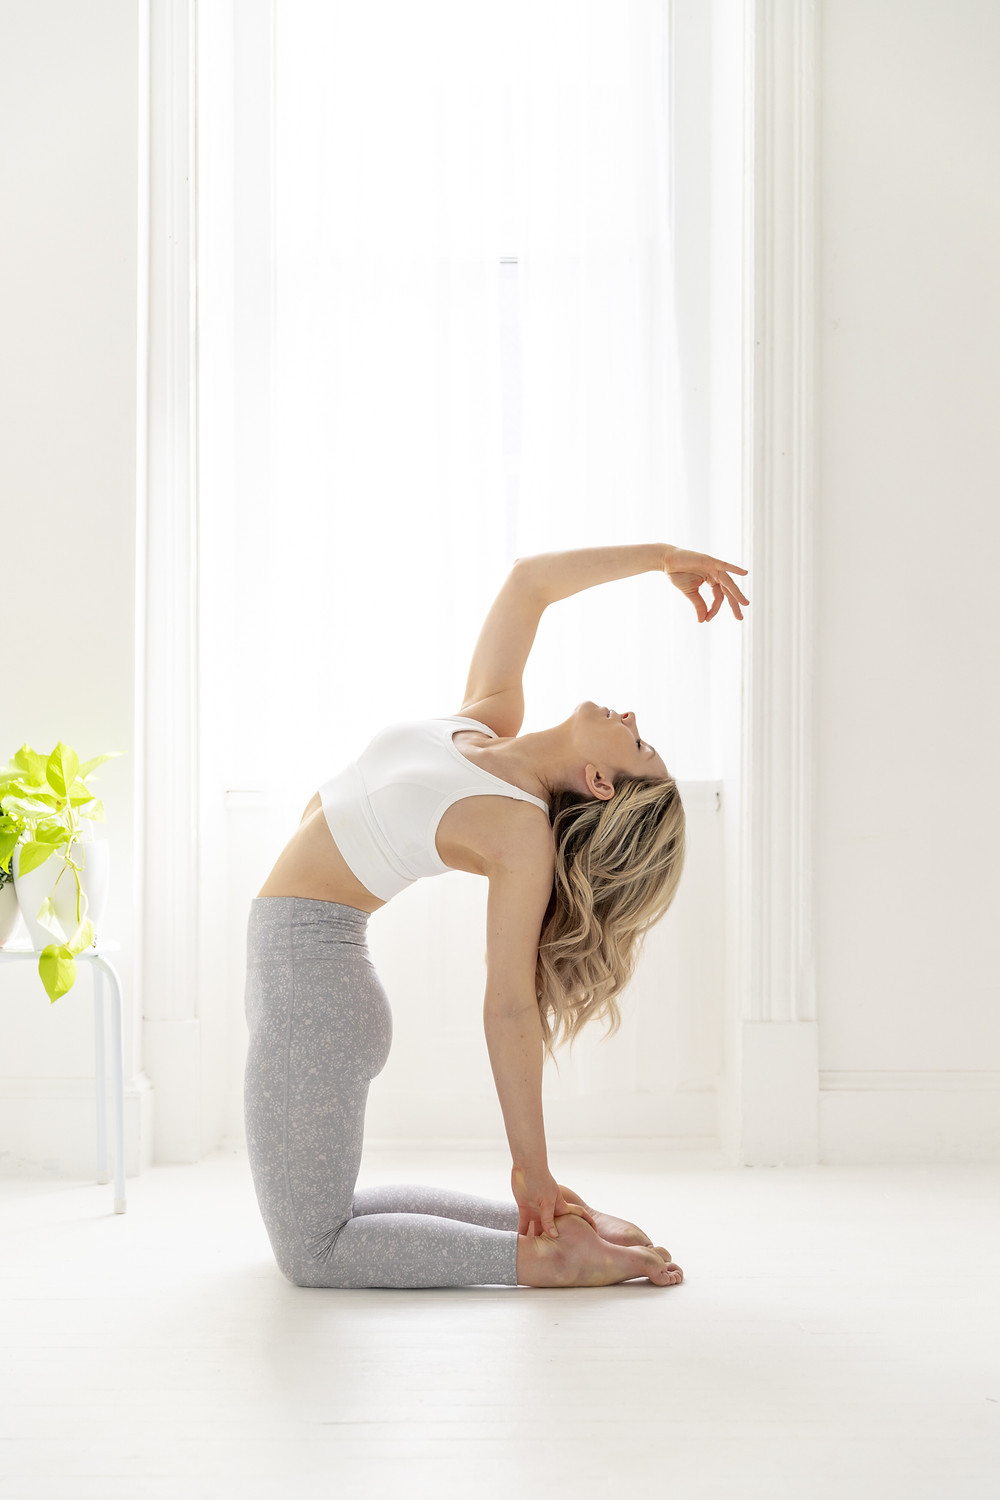 Yoga pose, personal branding, personal brand photography by LeeAnn K Photography